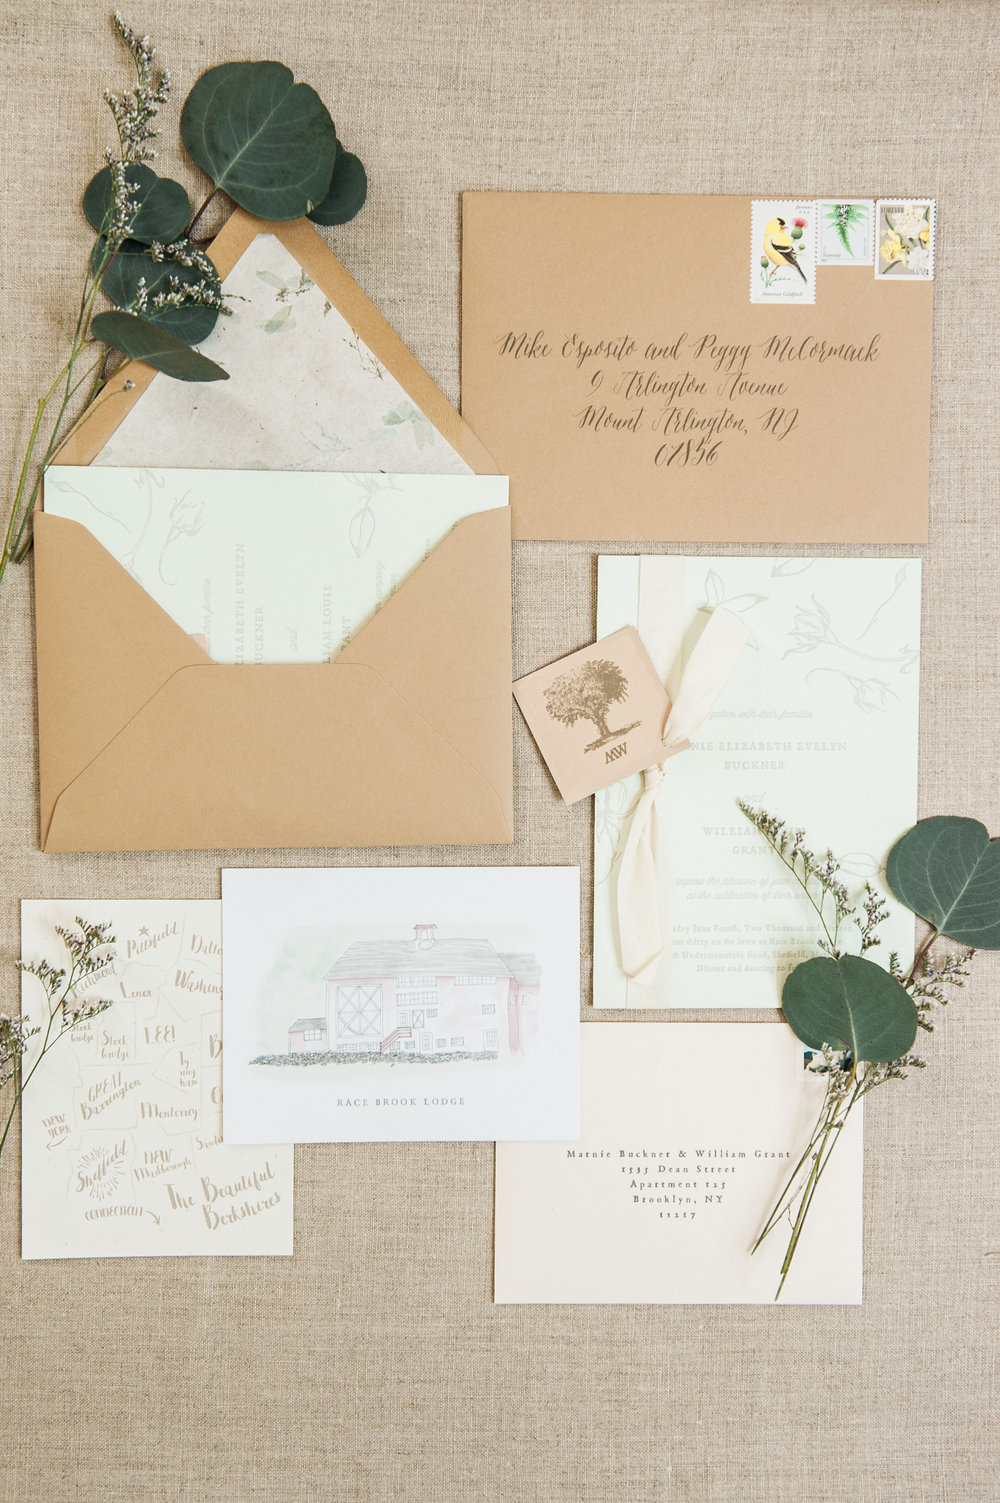 The main card, letterpress printed in pale gray on a duplexed pale green card, was inspired by spring with whimsical buds and leaves floating around a simple but vintage type treatment. We chose a handmade paper envelope liner with real leaf inclusions to echo the printed flowers on the invitation